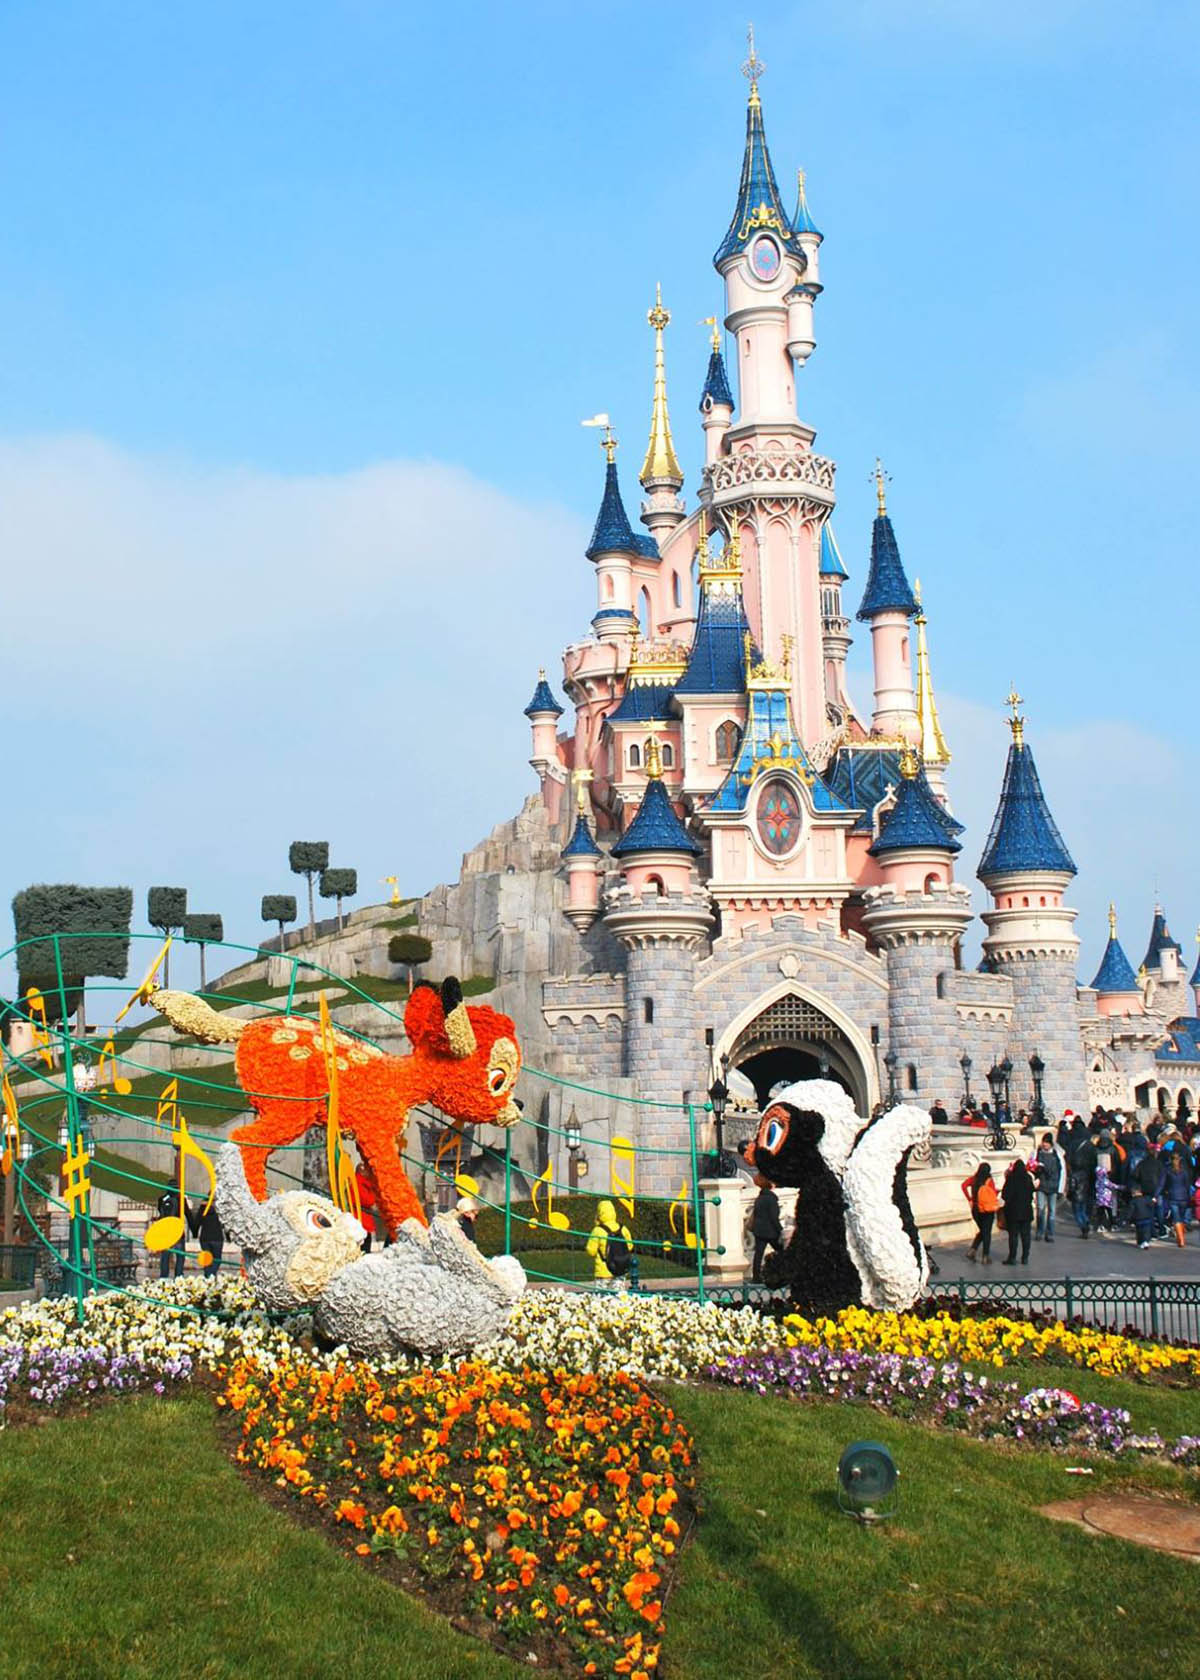 Disneyland Paris restaurants, dining and travel - The Ultimate Food Guide - reviews, Disney hotels, Disneyland Paris tickets, discount, Disneyland Park and Walt Disney Studios Park restaurants, dining, lunch and other meals.